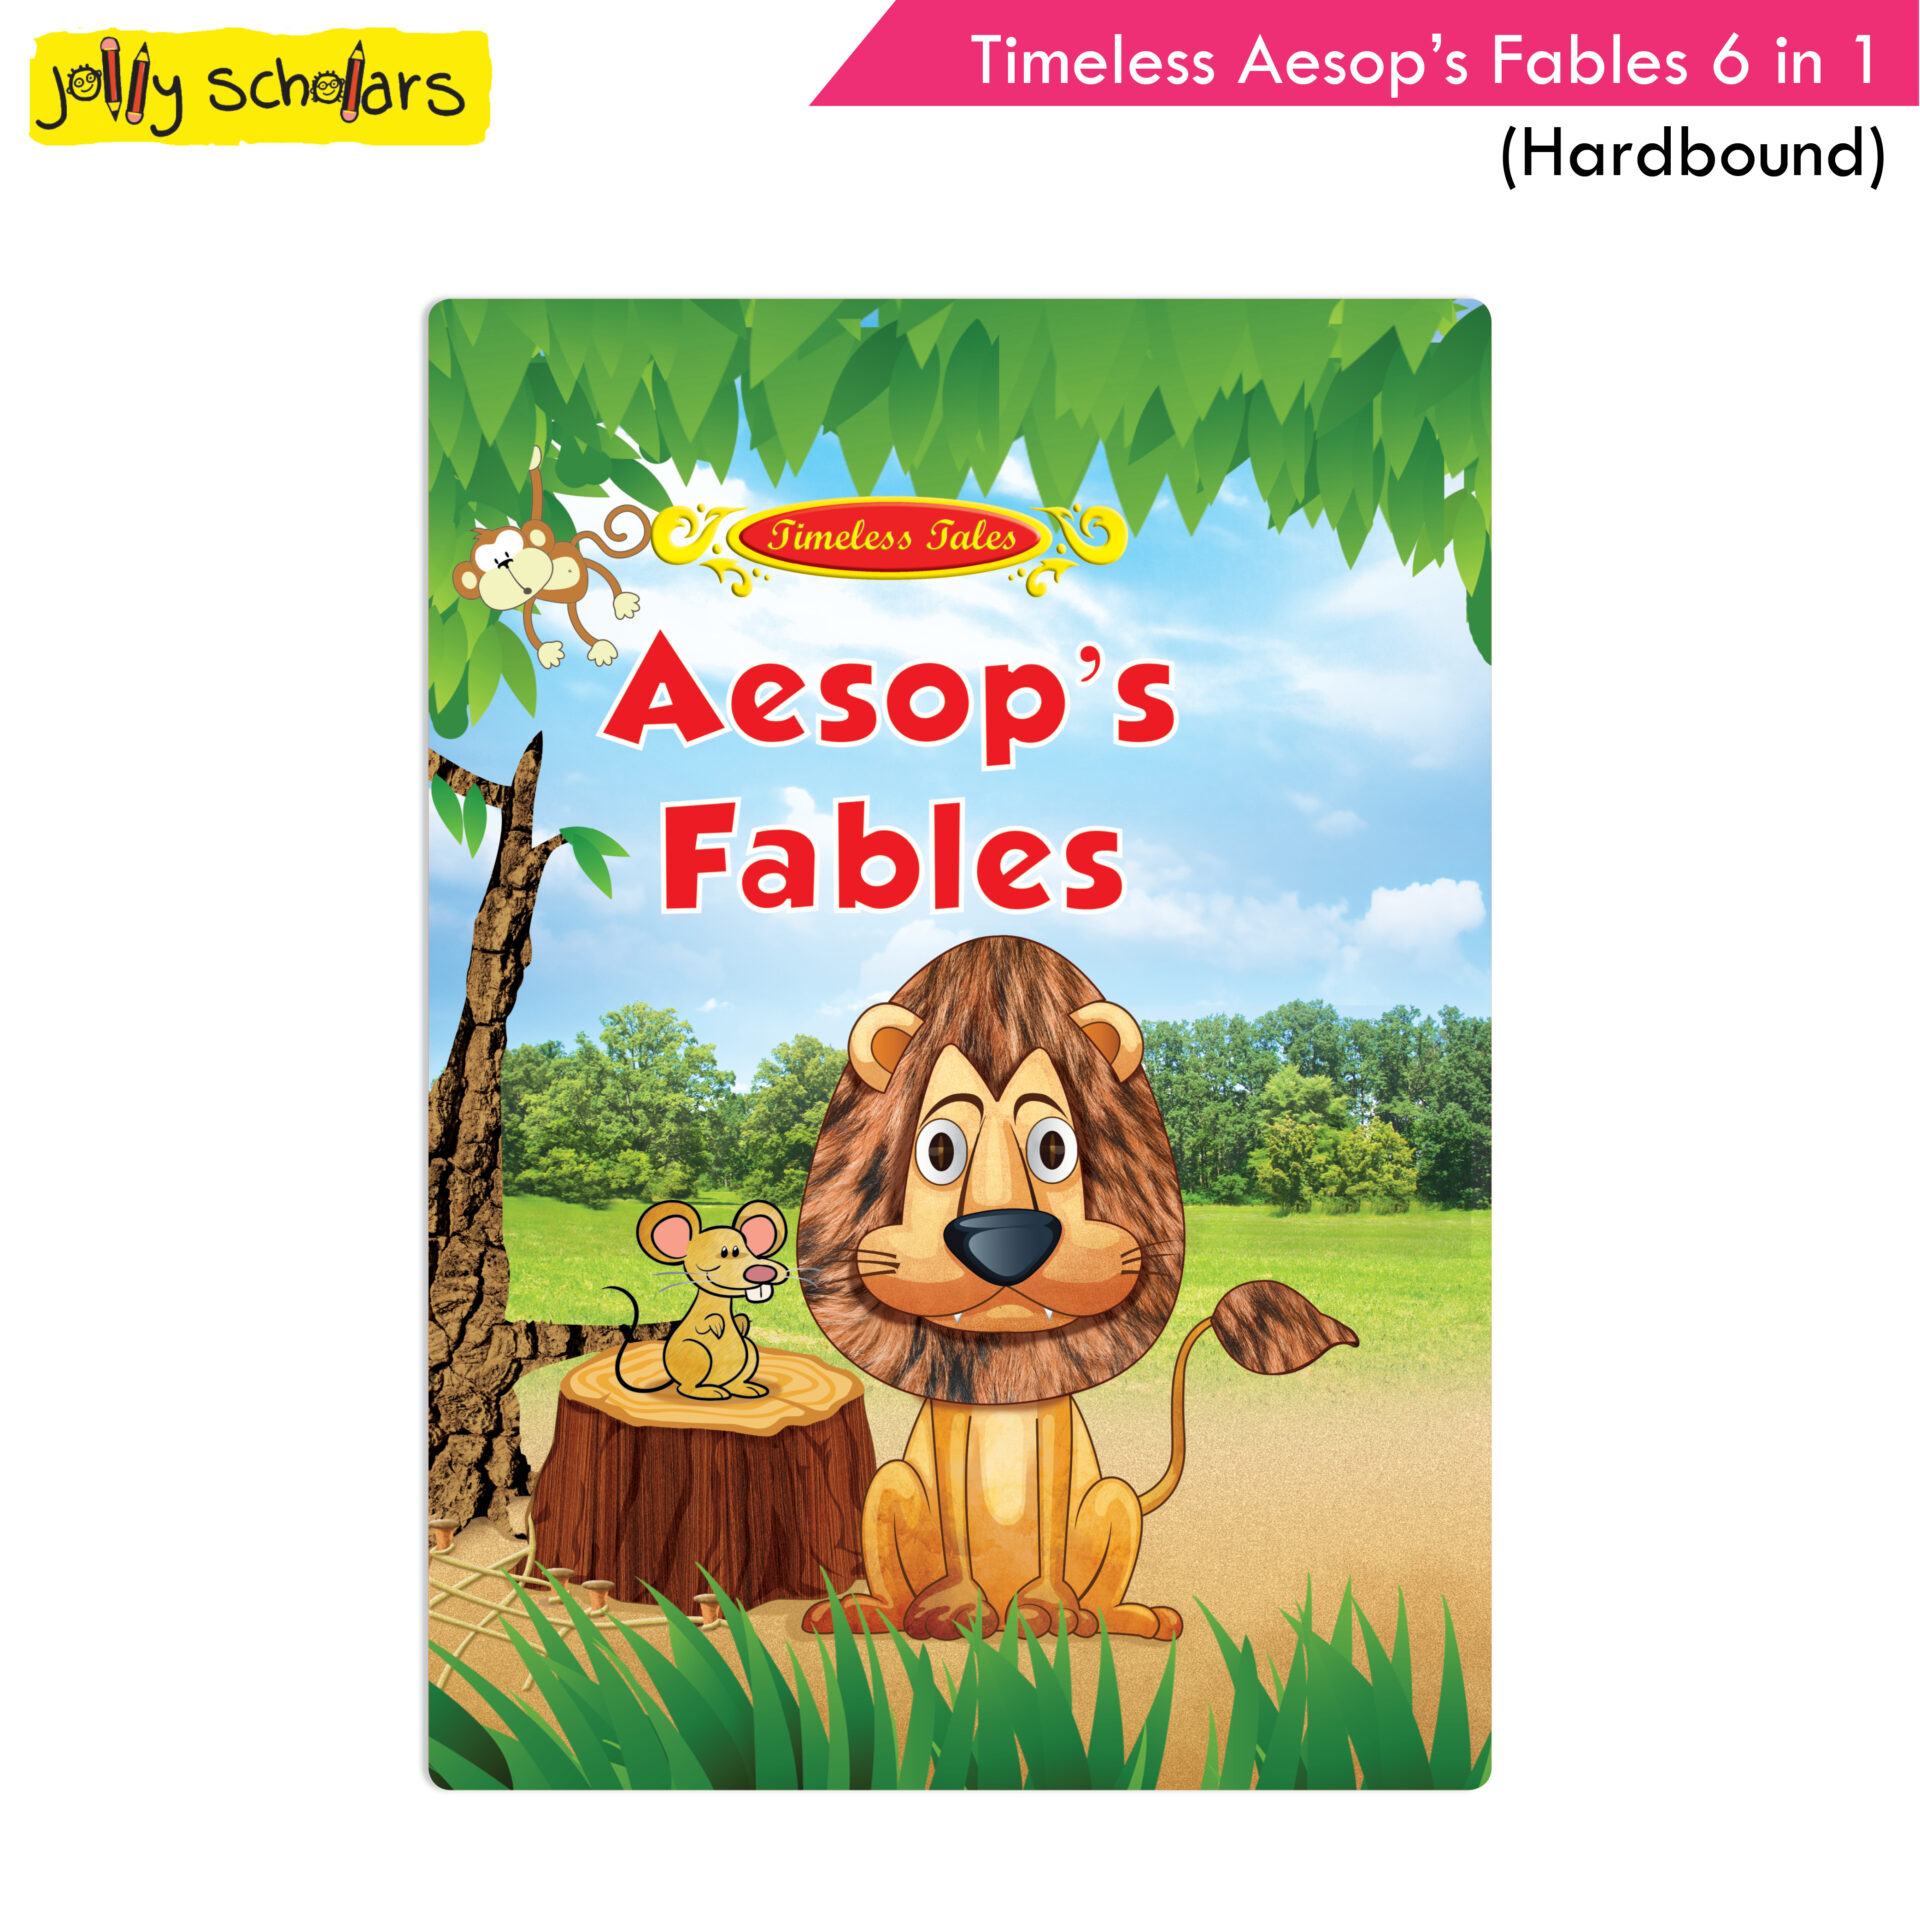 Jolly Scholars Timeless Aesops Fables 6 in 1 Hardbound 1